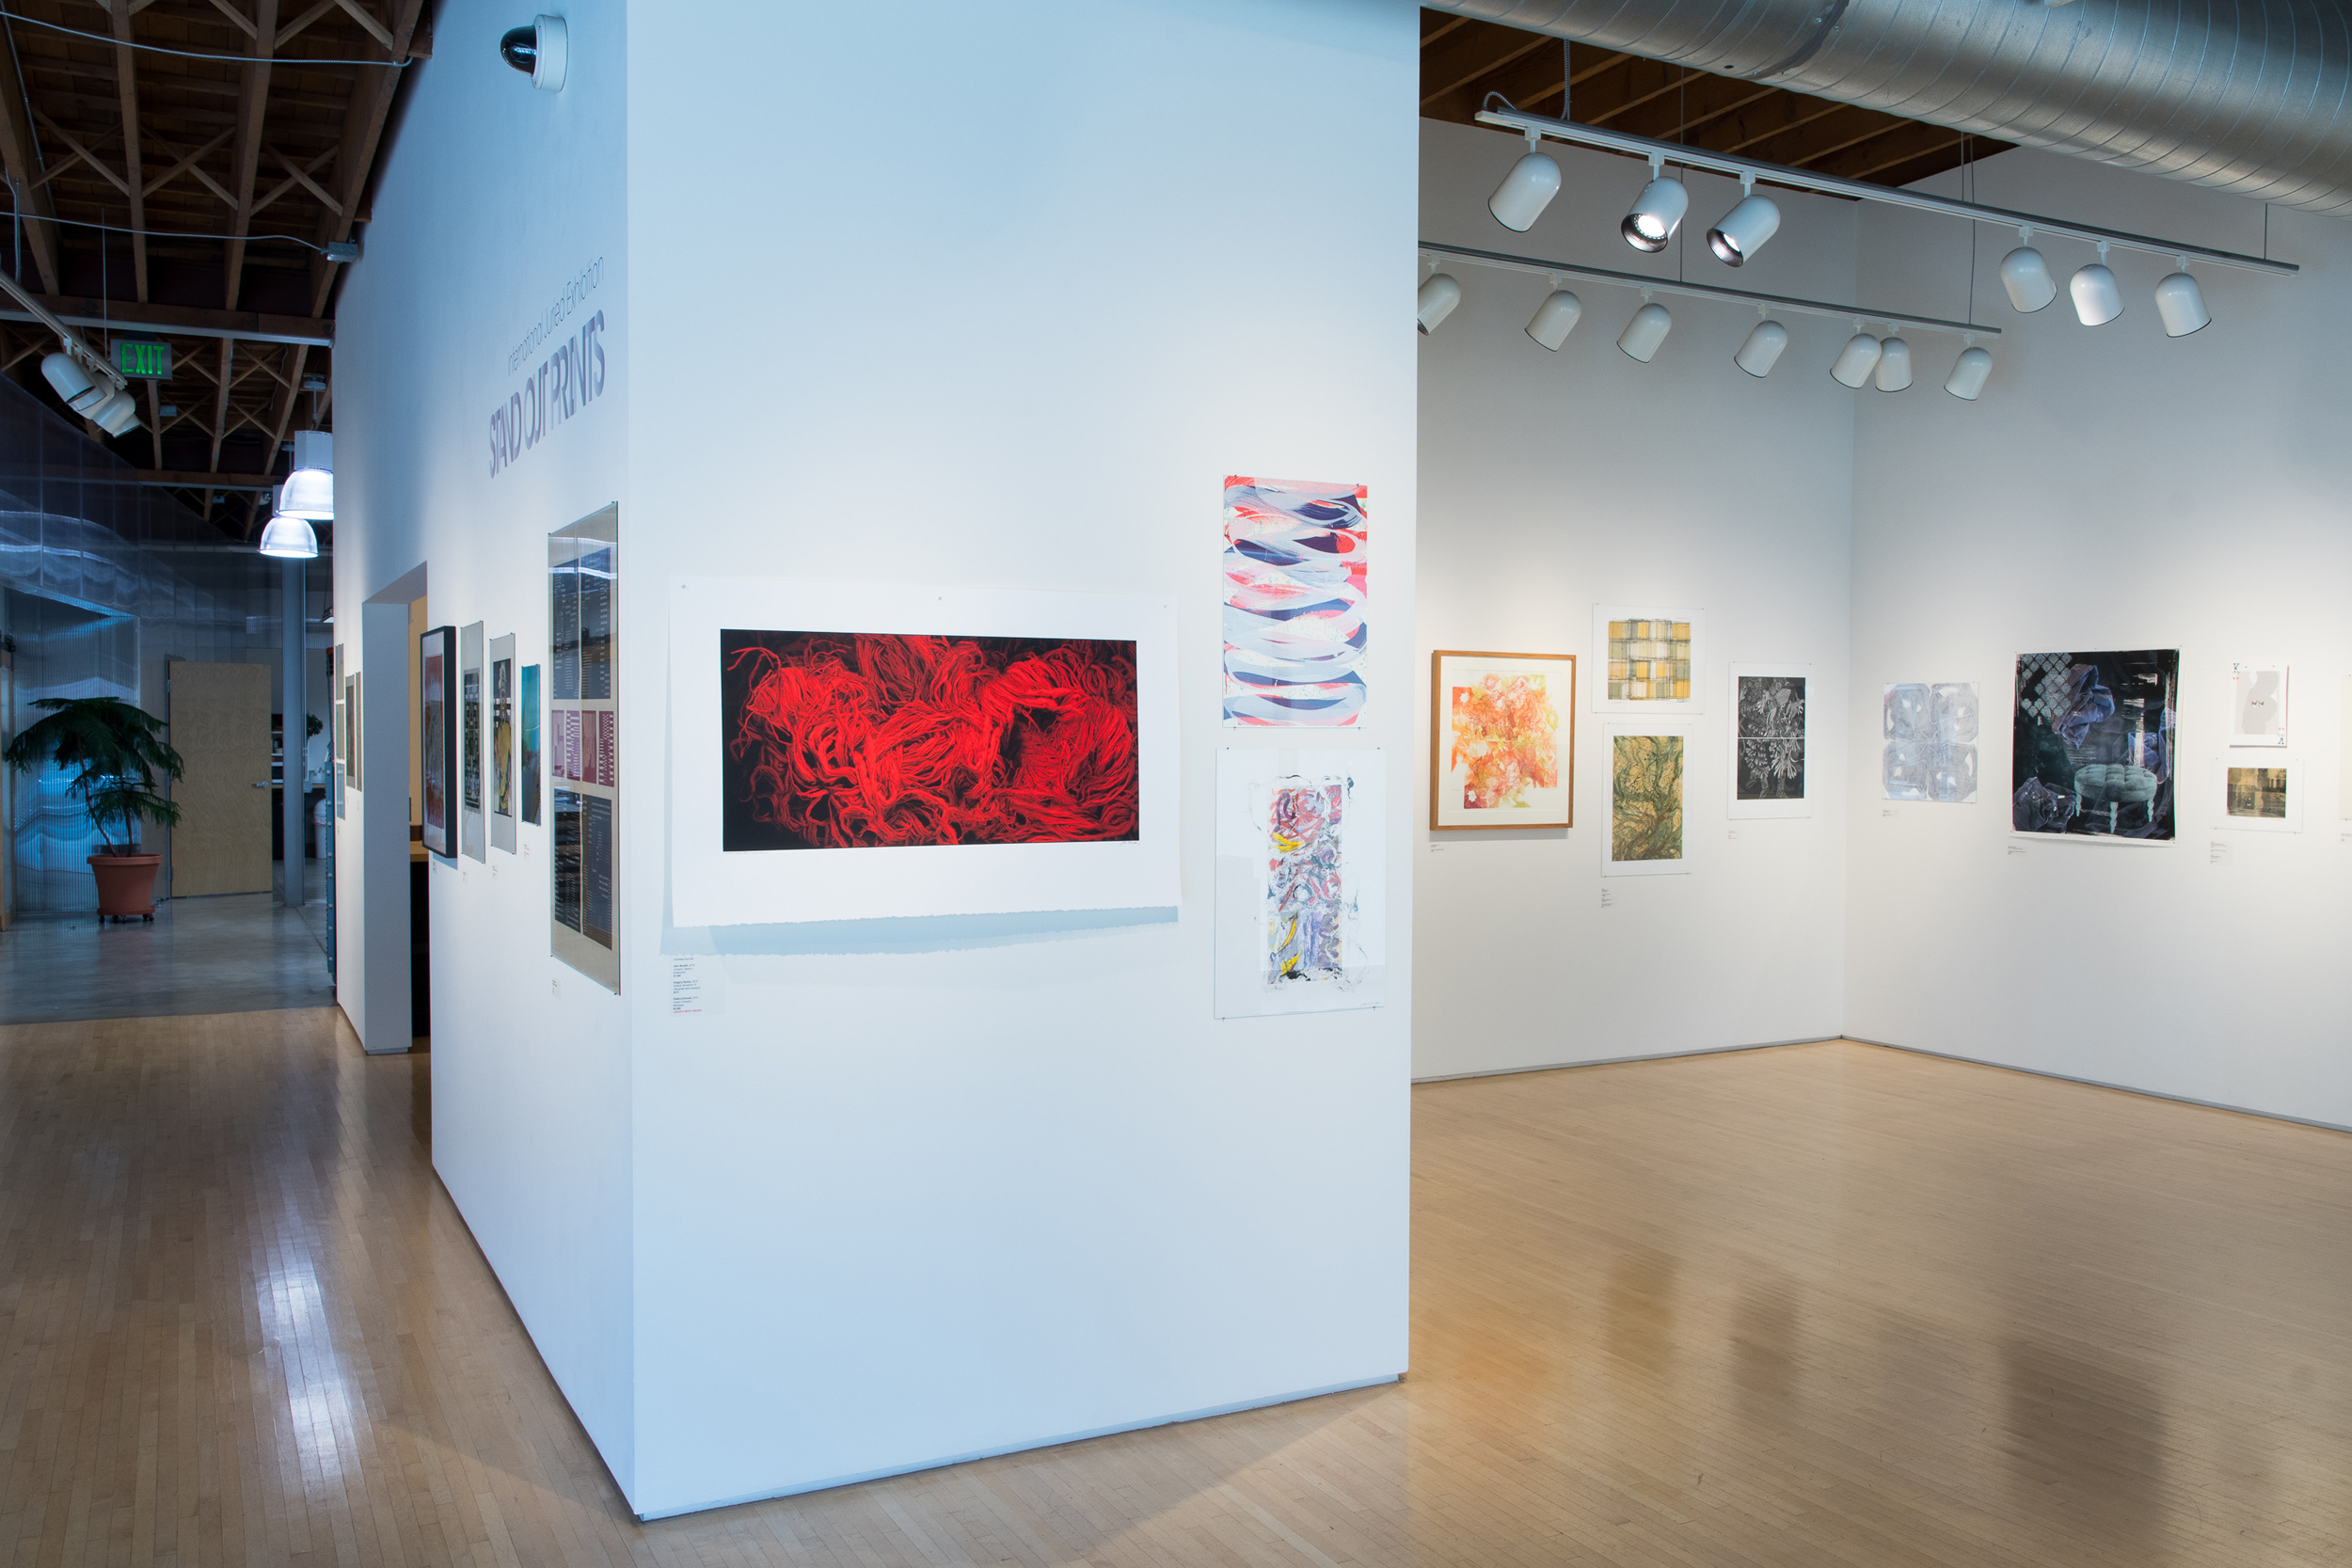 Highpoint PrintmakingStand Out Prints Exhibit180927a0201.JPG